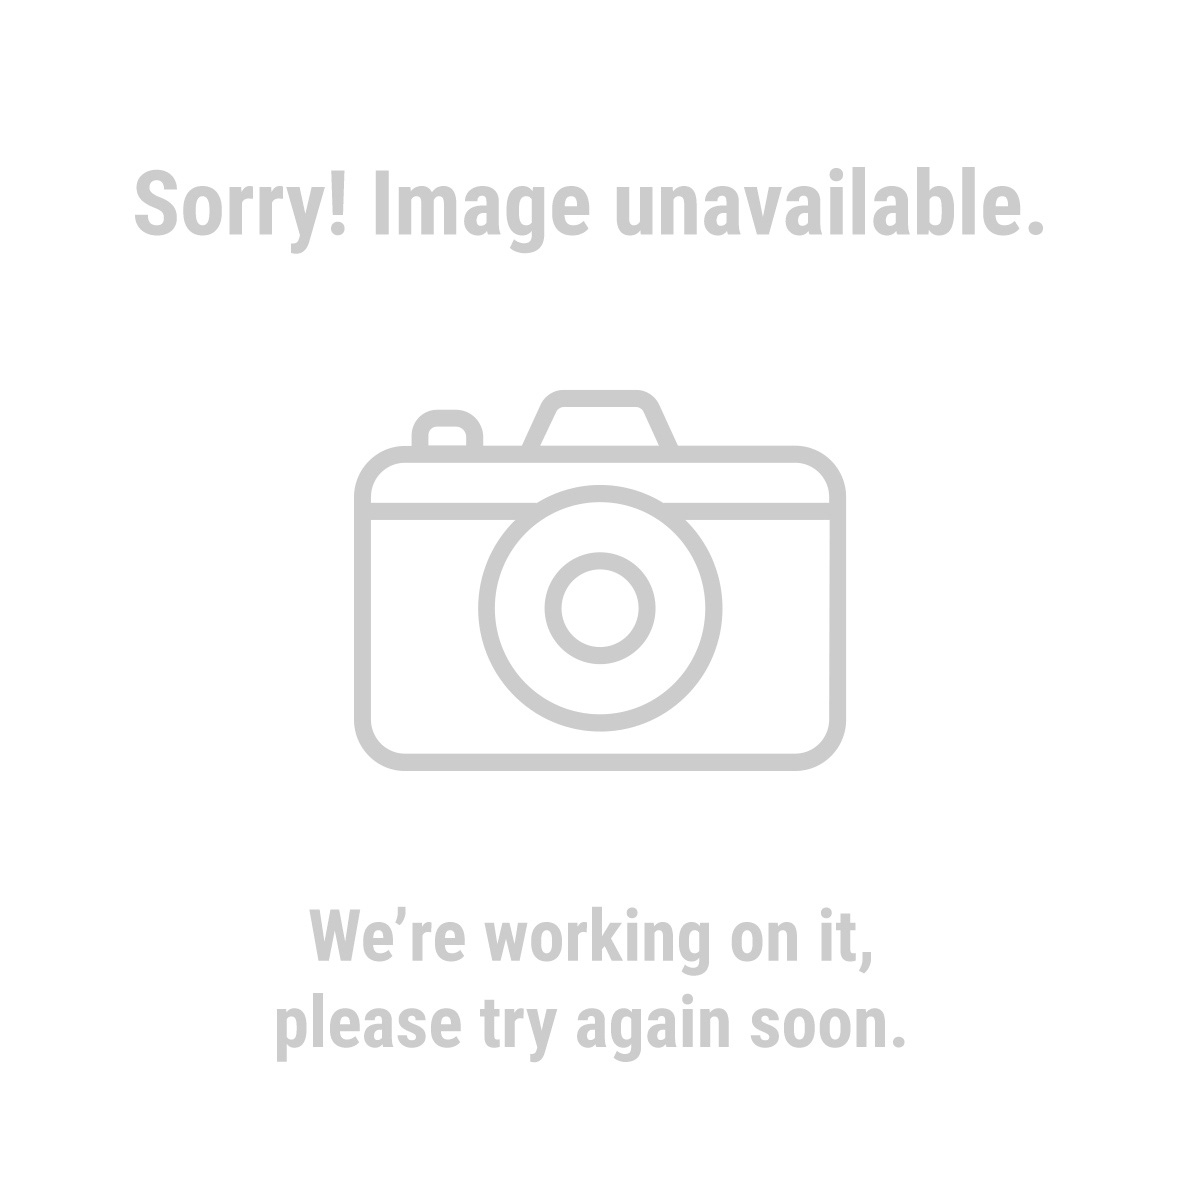 HFT 69191 24 ft. 10 in. x 39 ft. 4 in. All Purpose Weather Resistant Tarp